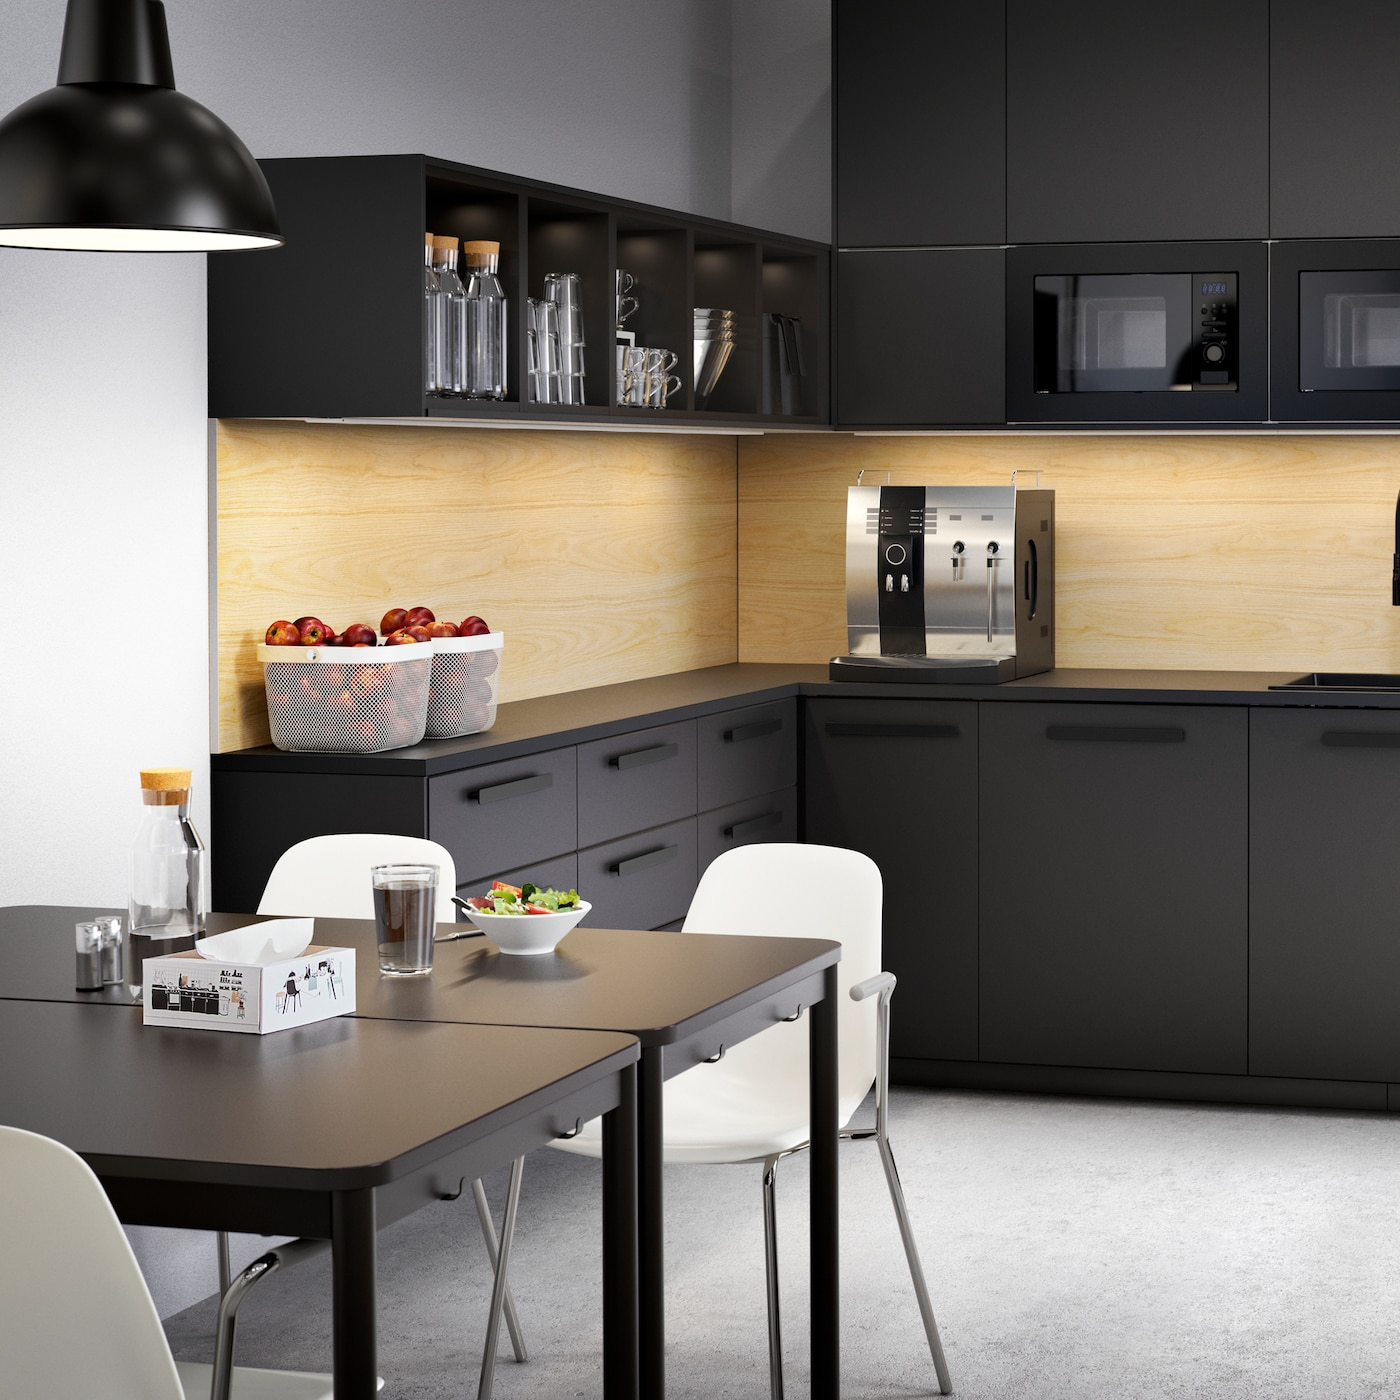 A large anthracite kitchen with drawers and cabinets, coffee machine, bowls with fruits and two tables with white chairs.